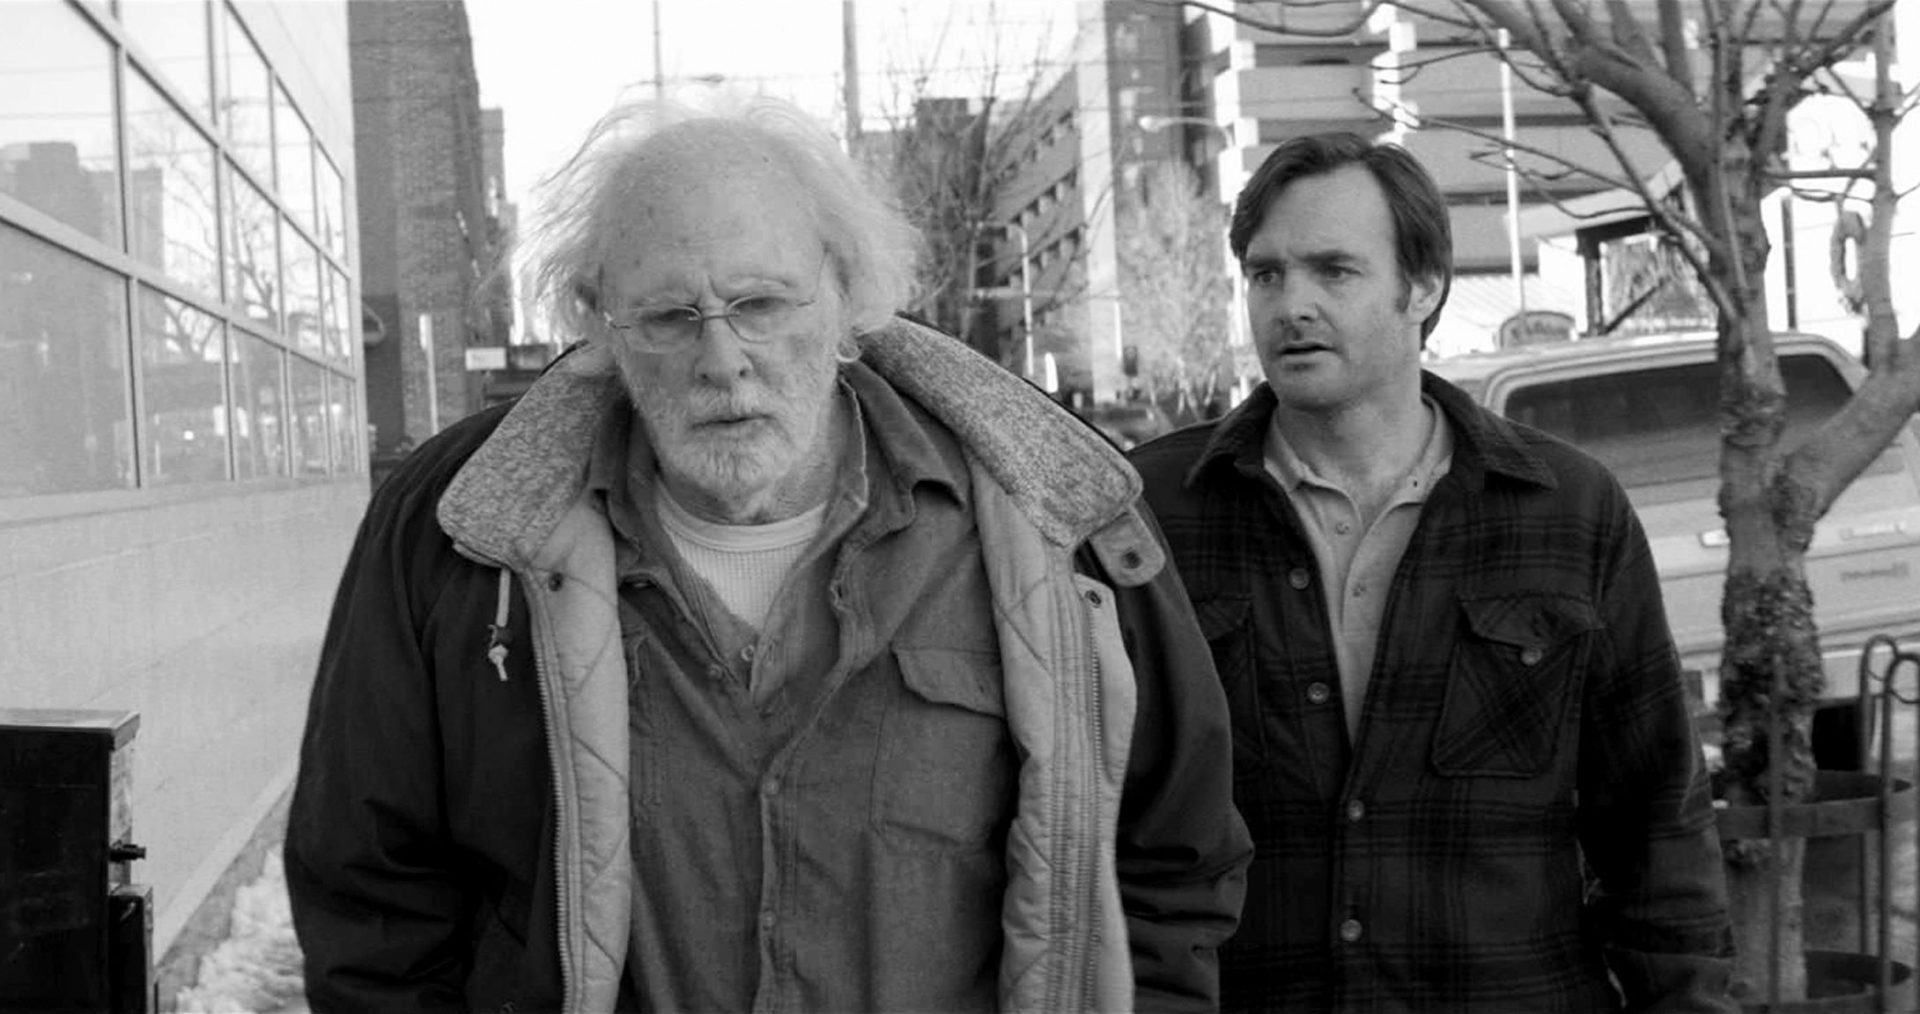 """This image released by Paramount Pictures shows Bruce Dern as Woody Grant, left, and Will Forte as David Grant in a scene from the film """"Nebraska,"""" about a booze-addled father who makes to Nebraska with his estranged son in order to claim a million dollar Mega Sweepstakes Marketing prize. (AP Photo/Paramount Pictures) ORG XMIT: NYET157"""